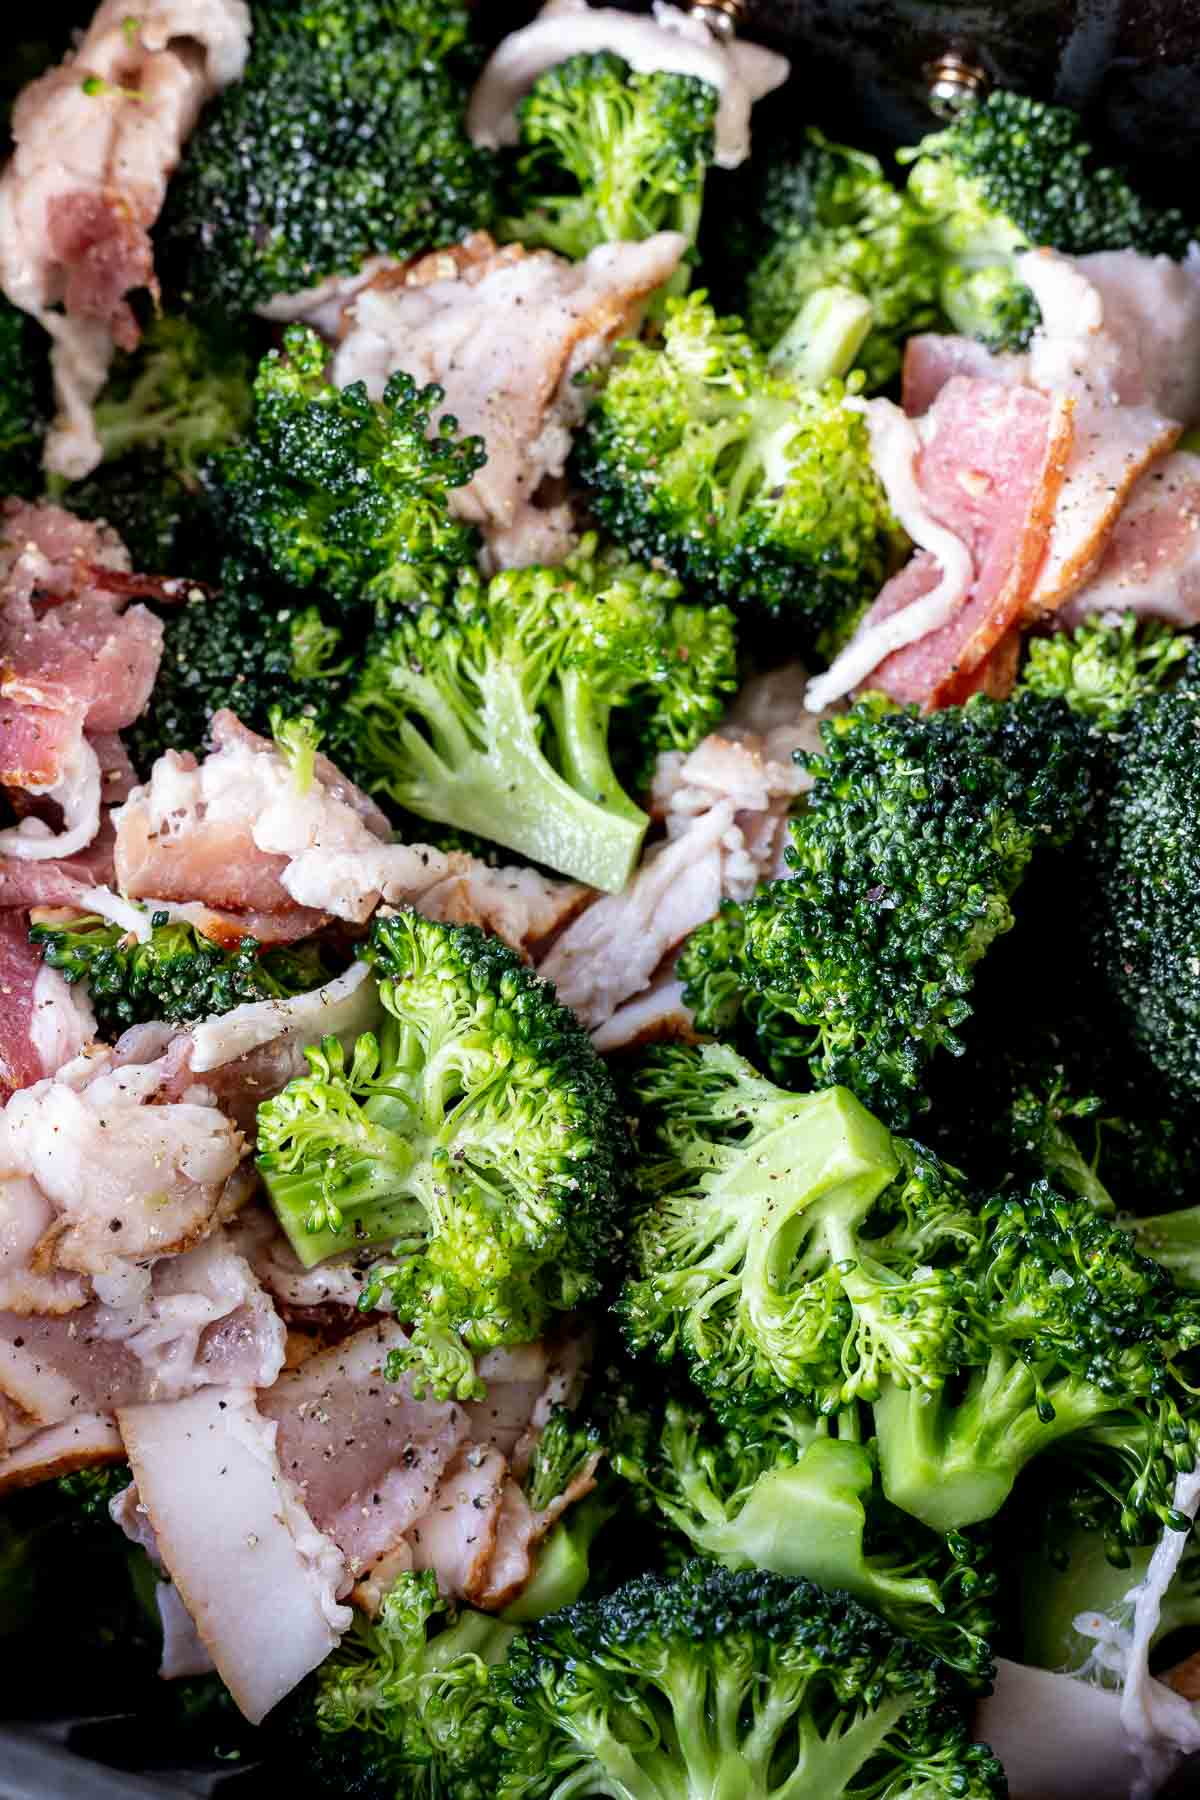 raw broccoli and bacon in air fryer basket